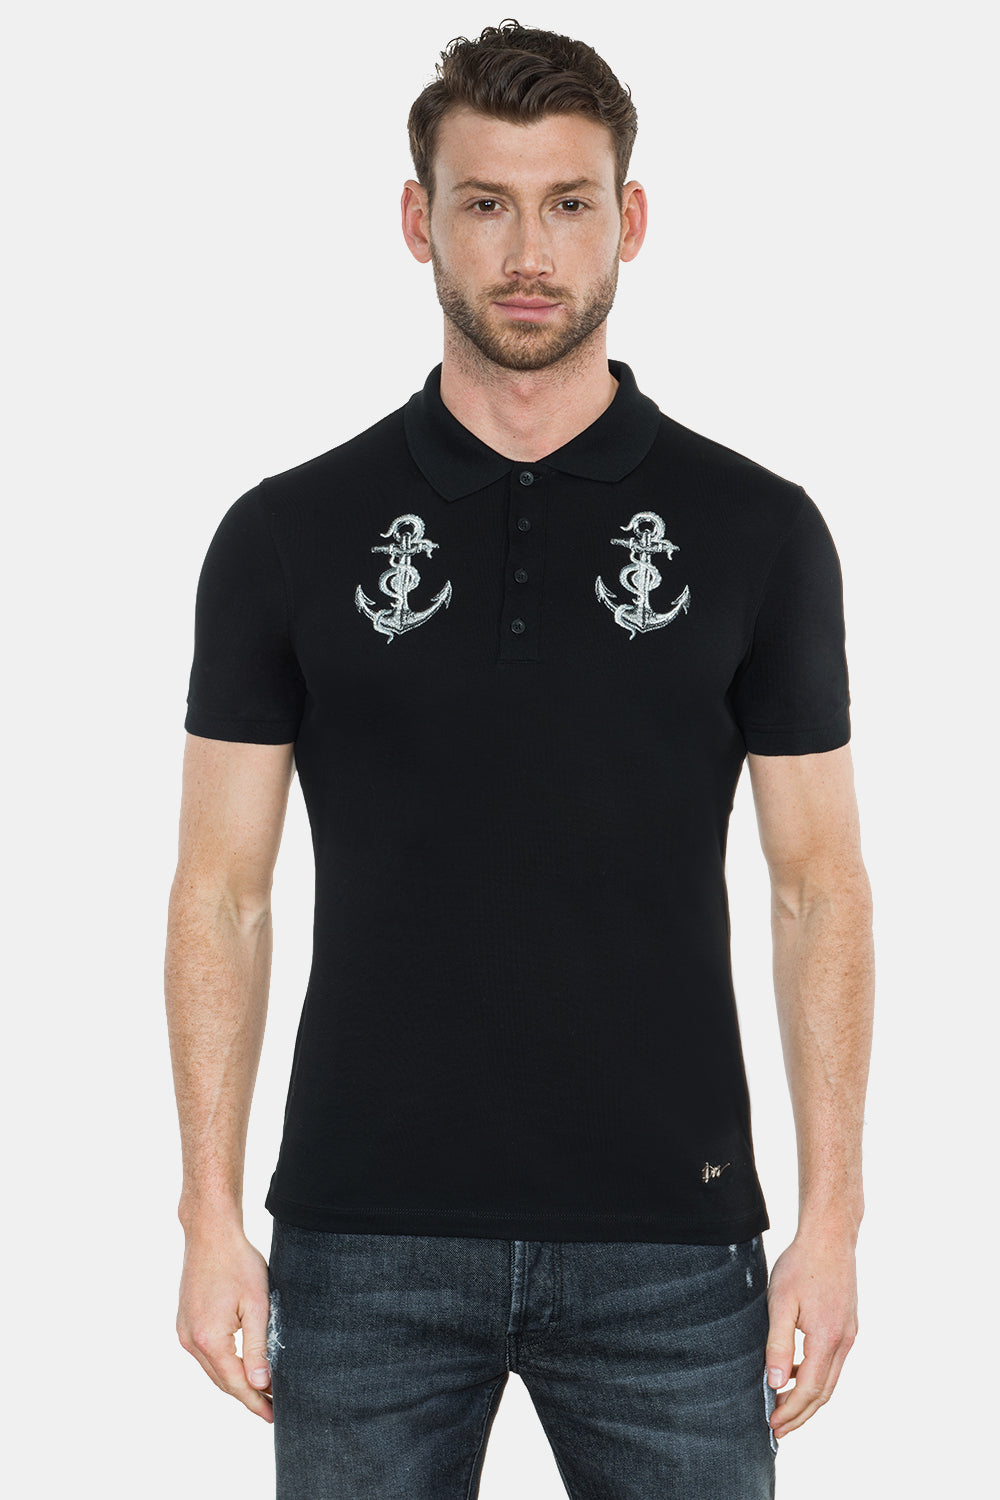 ANCHOR EMBROIDERY POLO - DIMORAL OFFICIAL